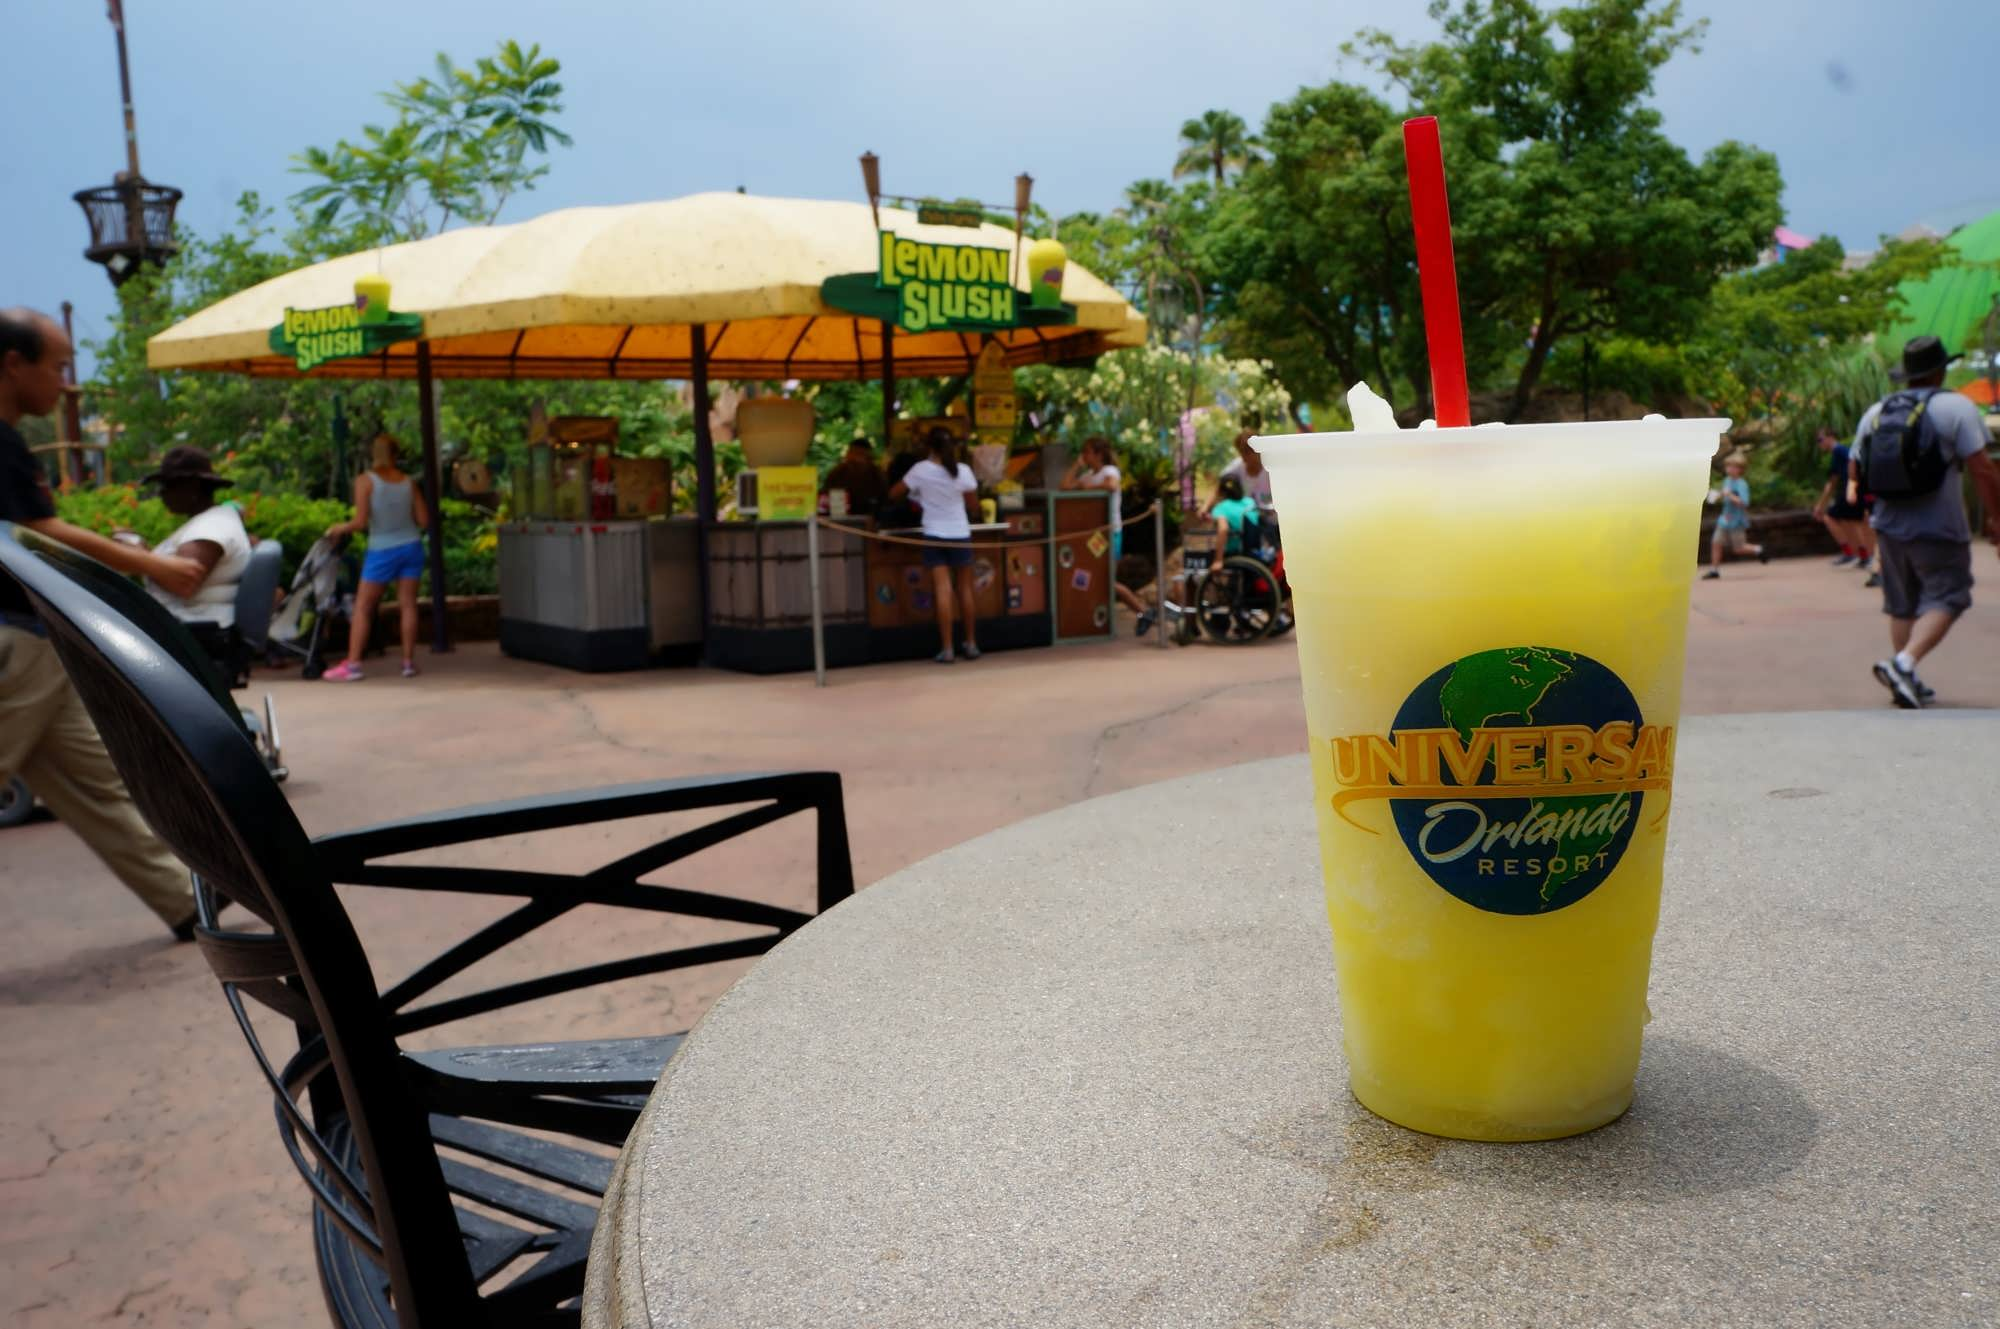 Lemon Slush at Universal Orlando Resort.